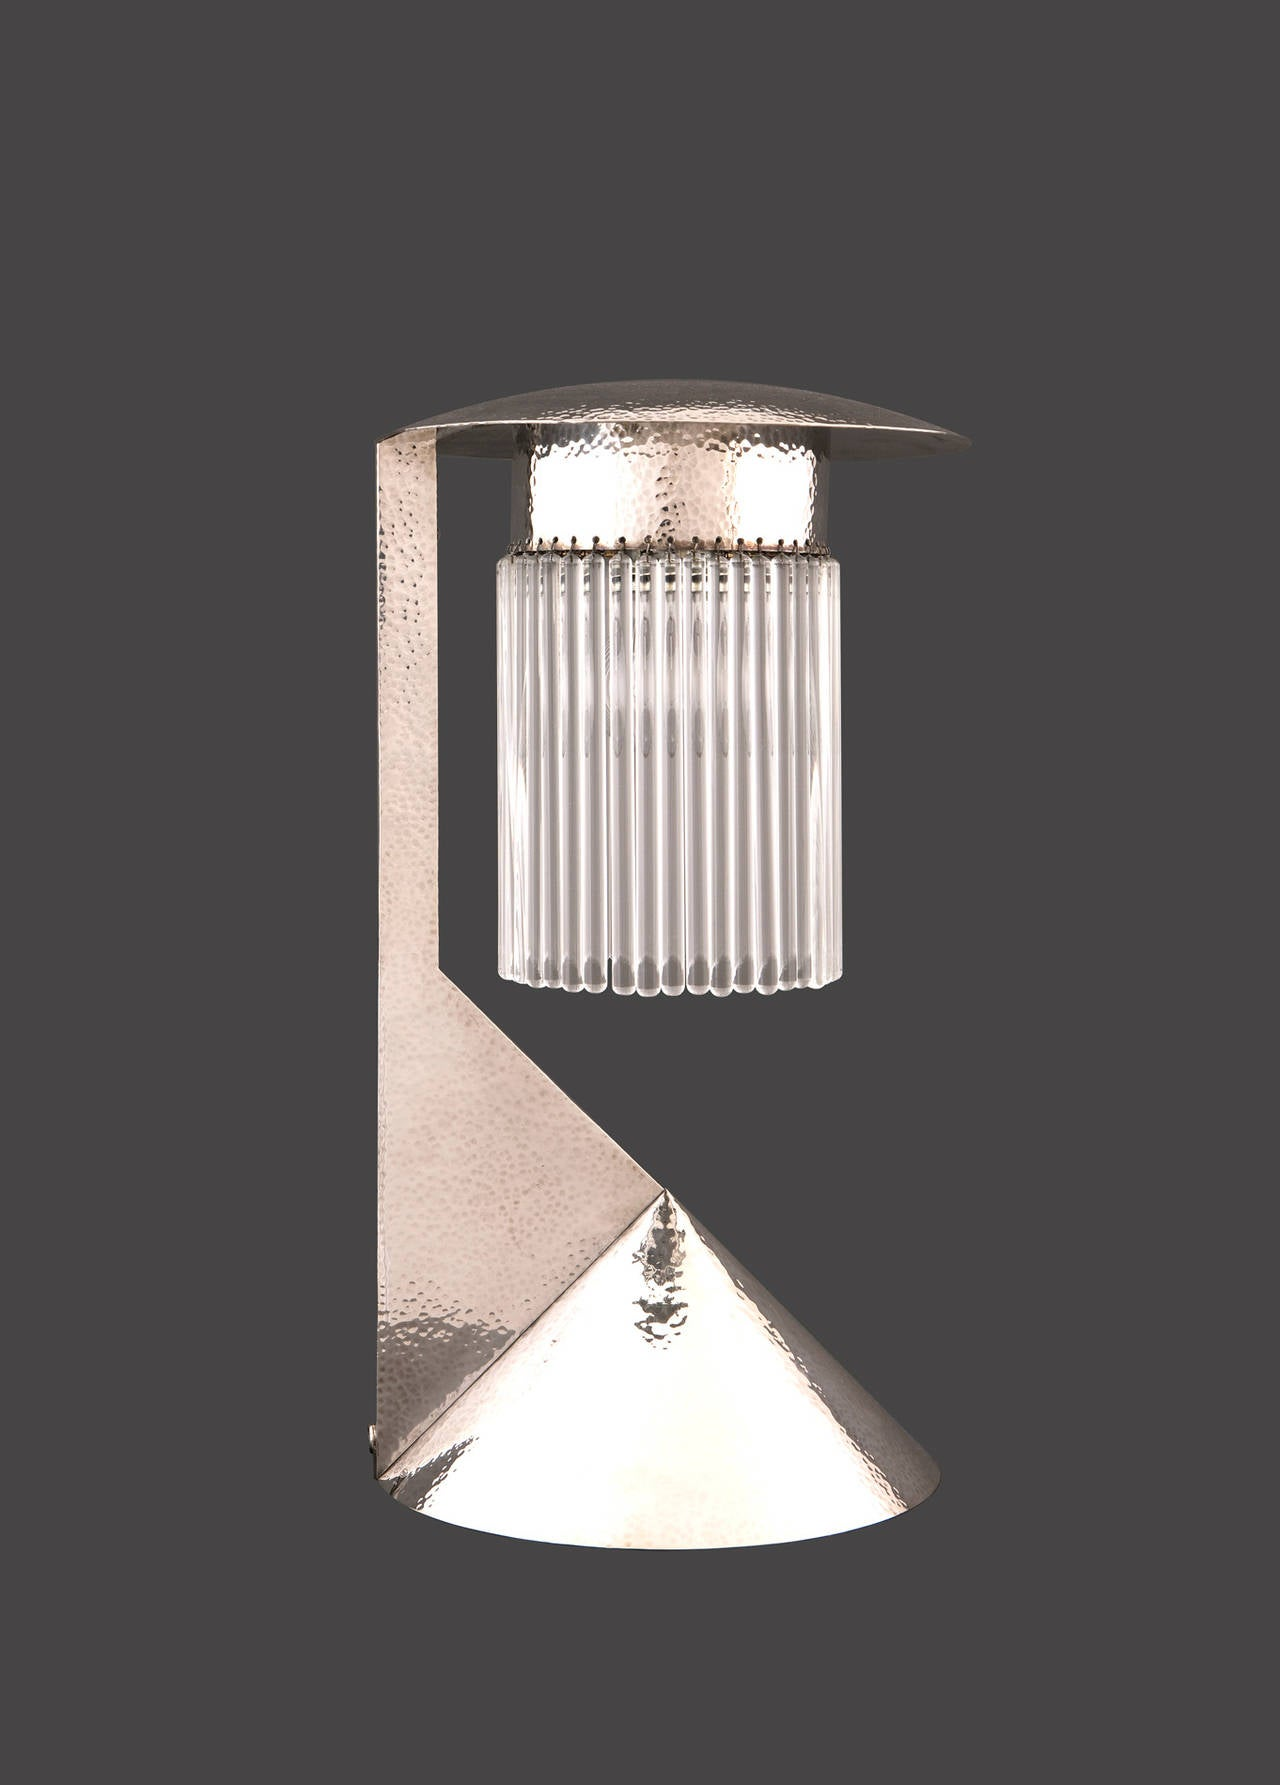 Koloman Moser Designed Solid Silver Lamp Reproduced by Woka Lamps, 2003 In Excellent Condition For Sale In Vienna, AT